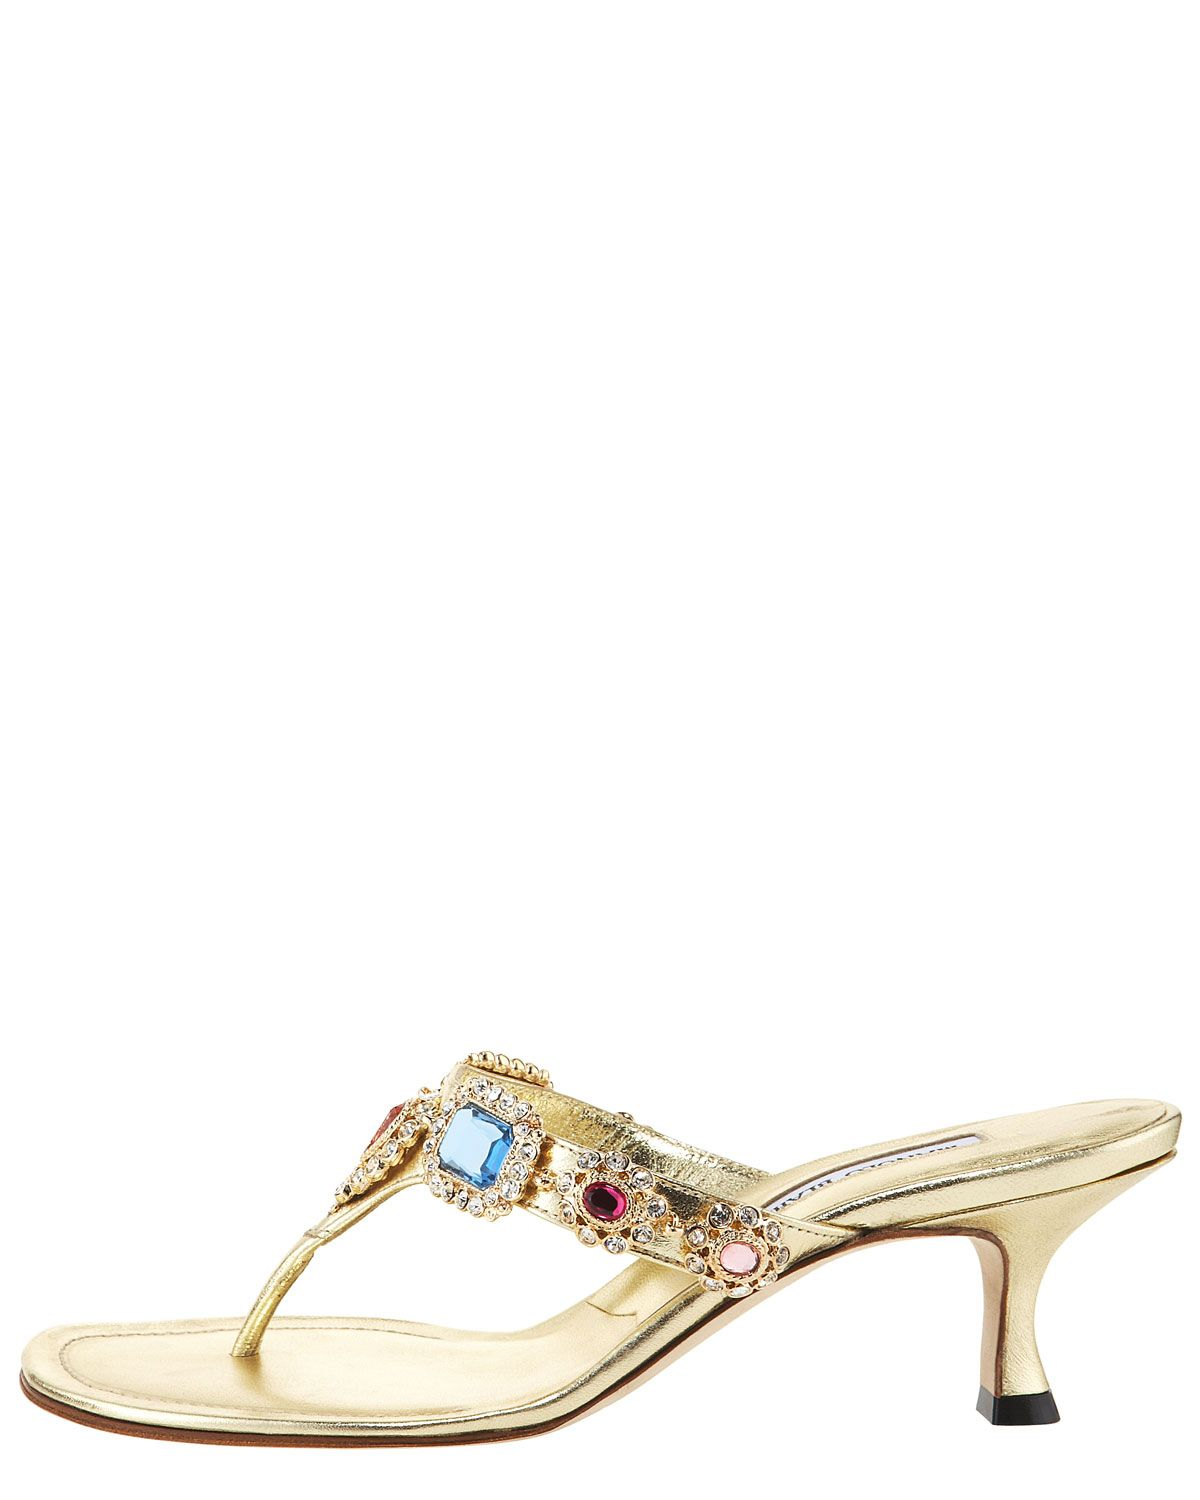 Women's Metallic Beaded Kitten-heel Thong Sandal | Kitten heels ...